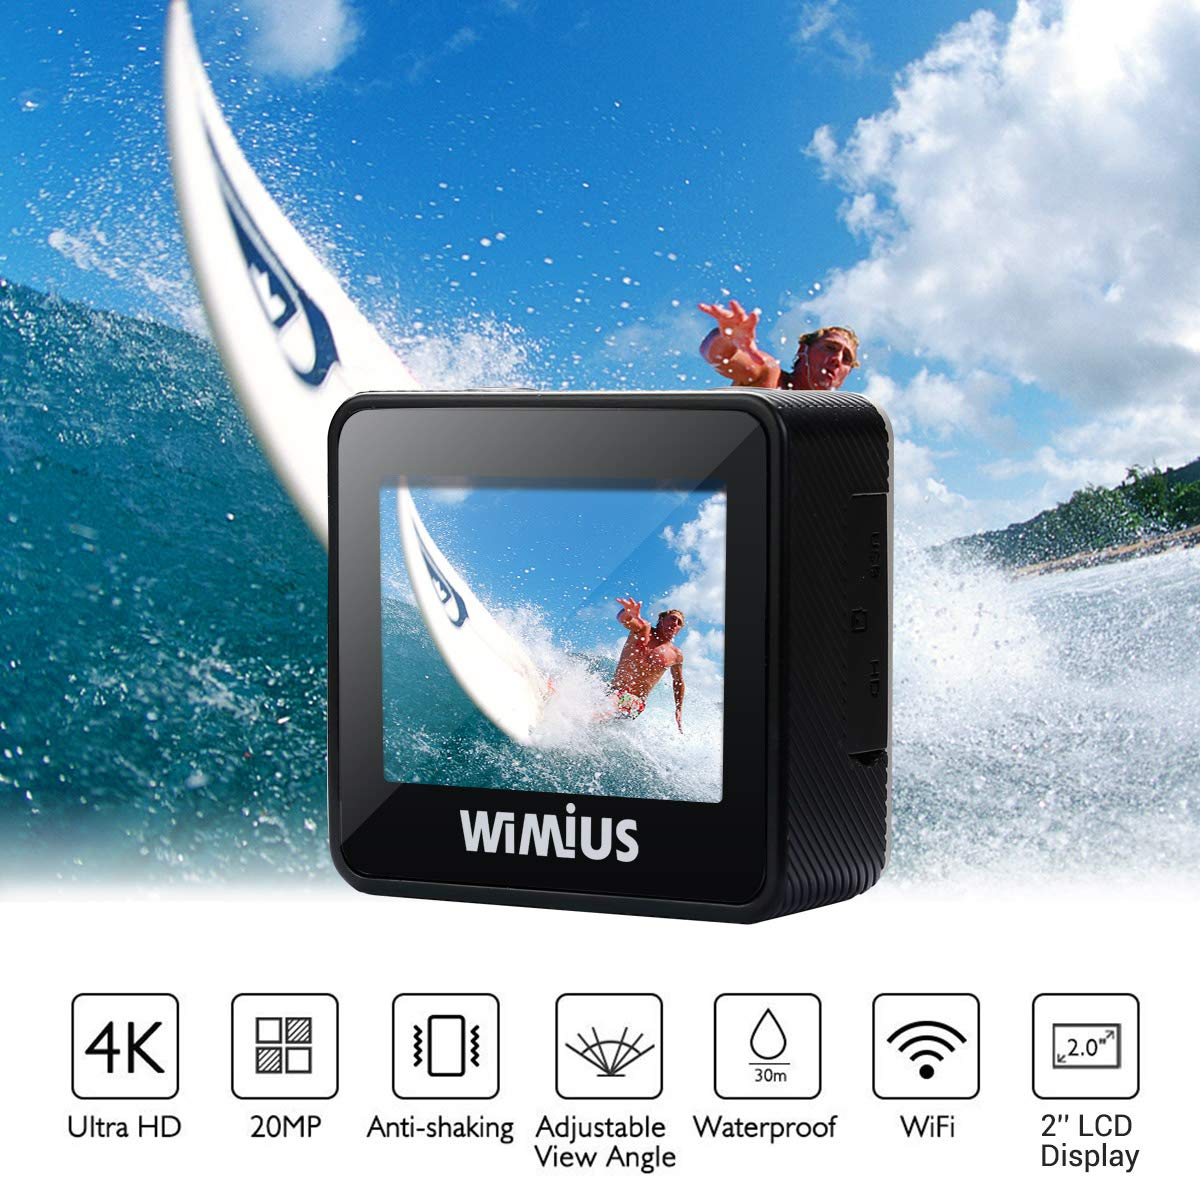 Action camera Wimius L1 ULTRA HD 4K, 20 MP, Features